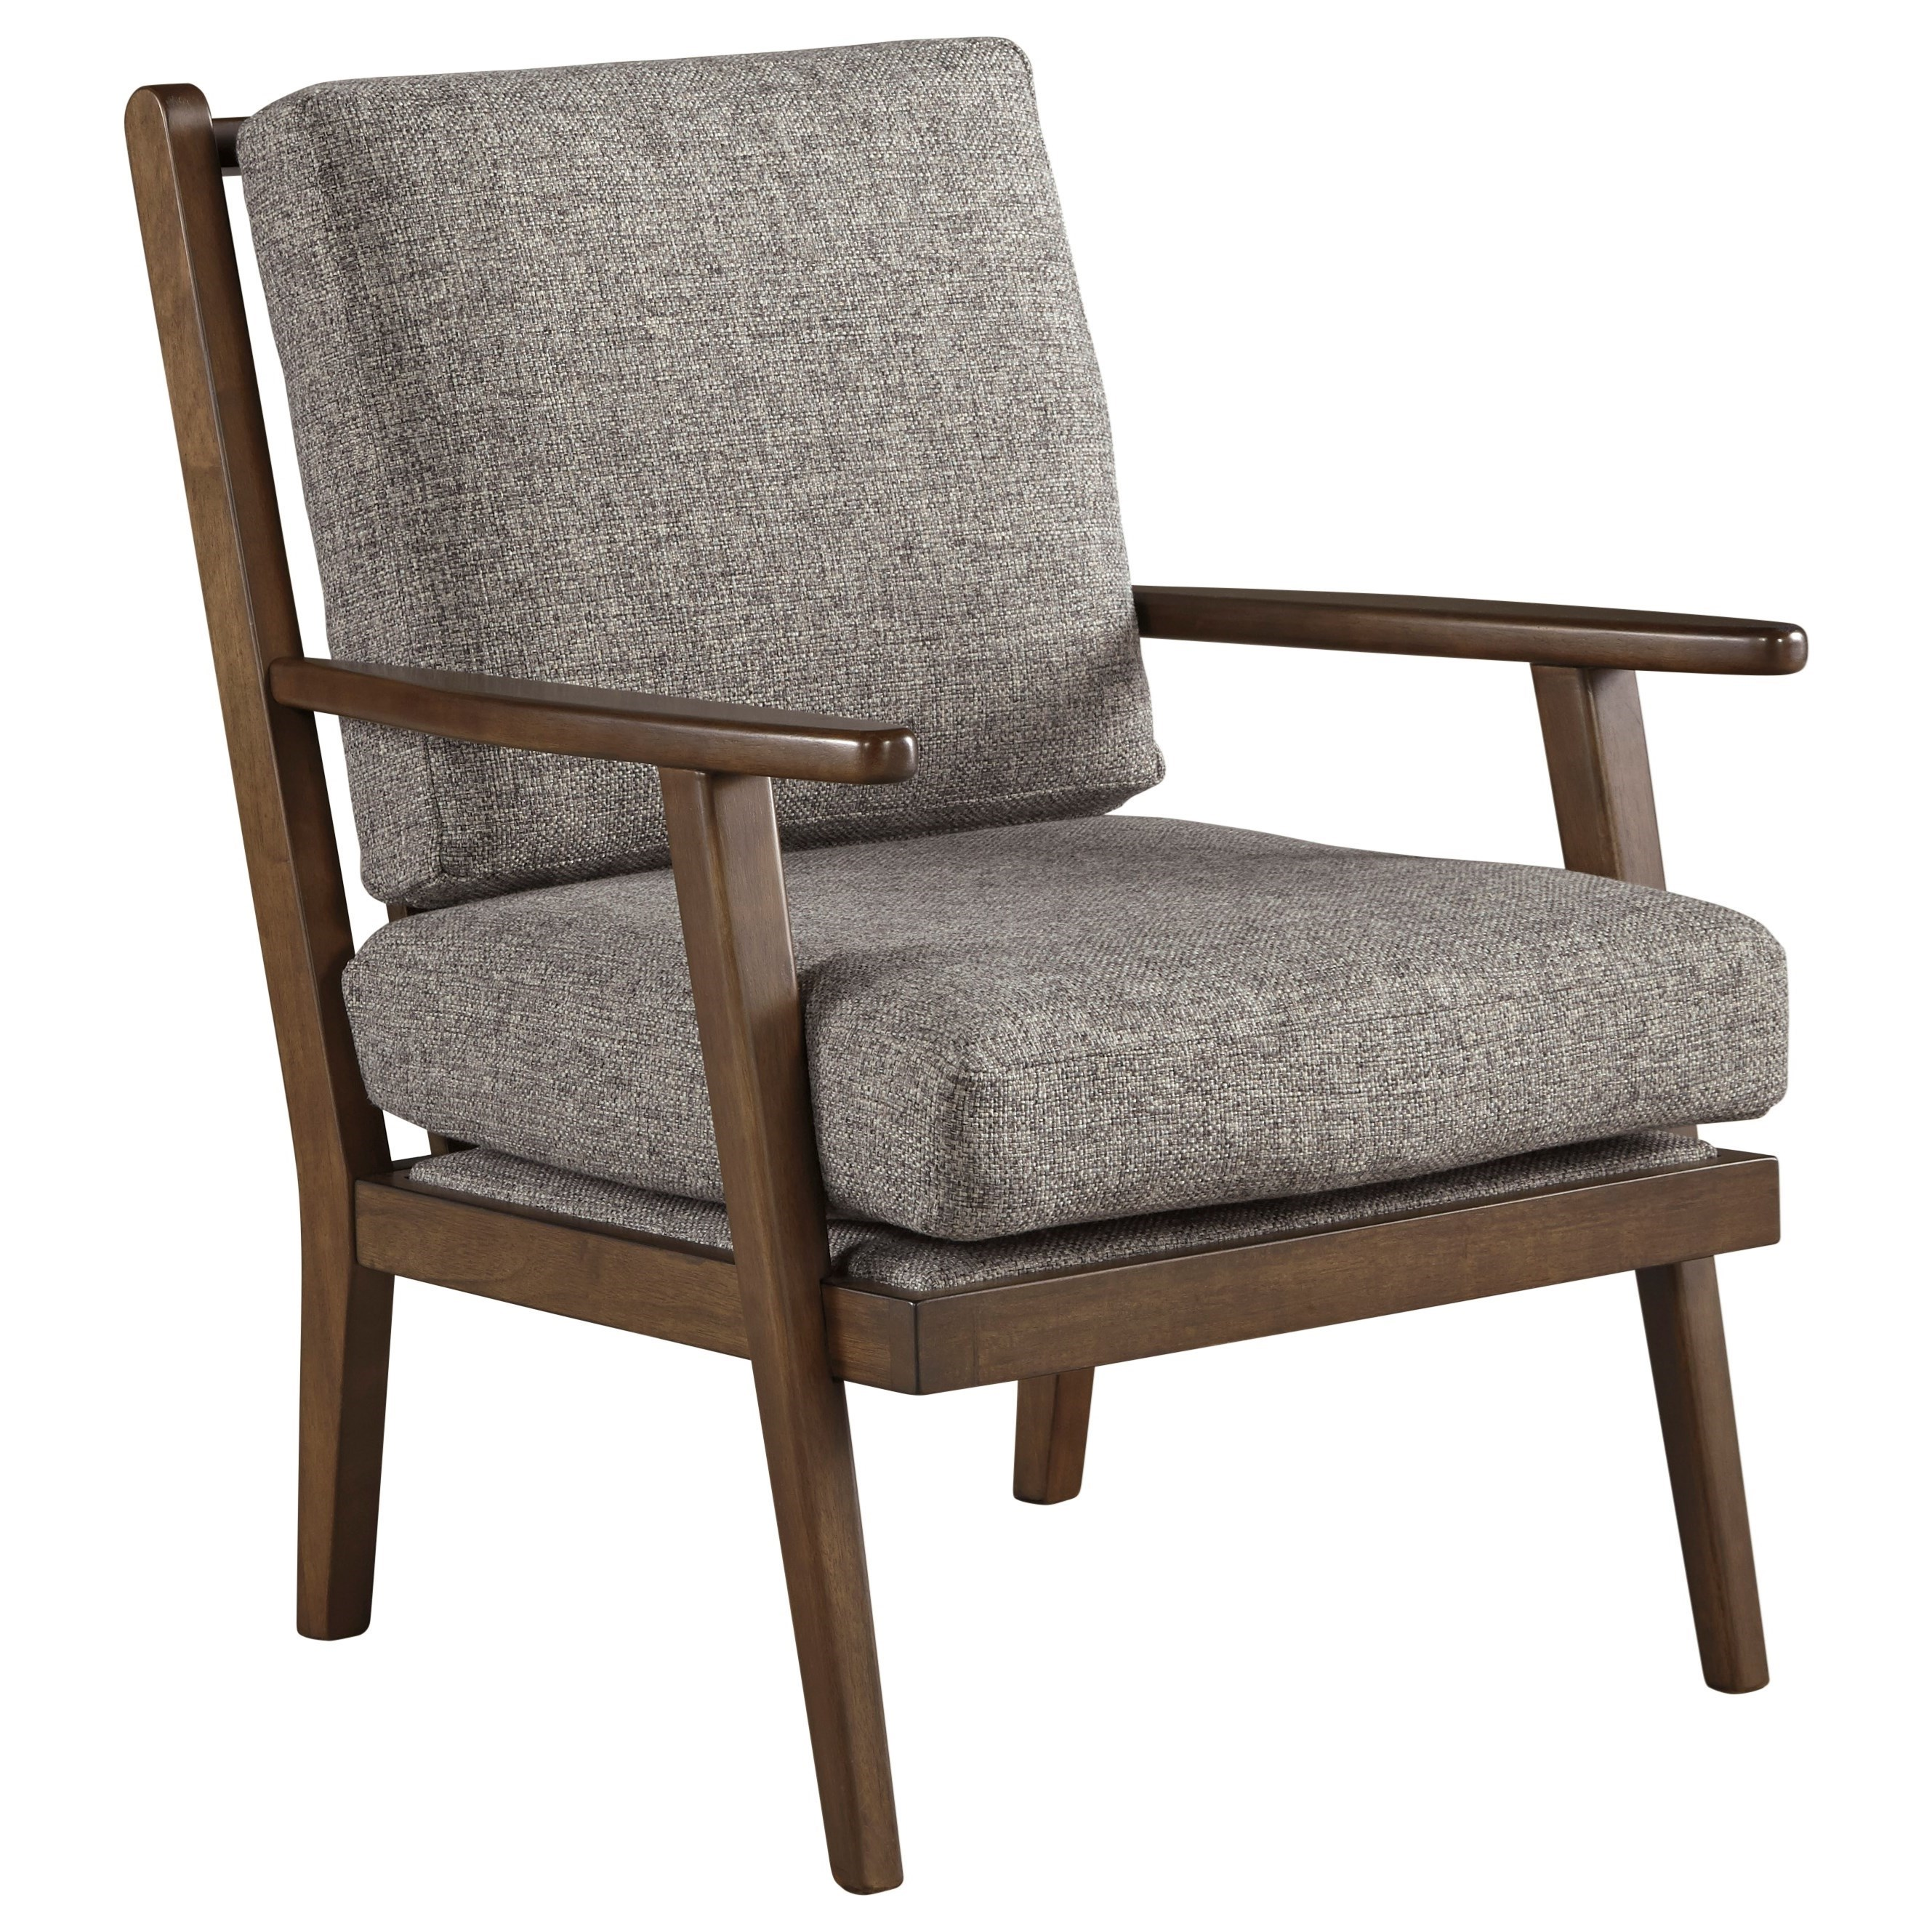 Ashley Furniture ZardoniAccent Chair ...  sc 1 st  Furniture and ApplianceMart & Ashley Furniture Zardoni 1140260 Danish Modern Style Accent Chair ...